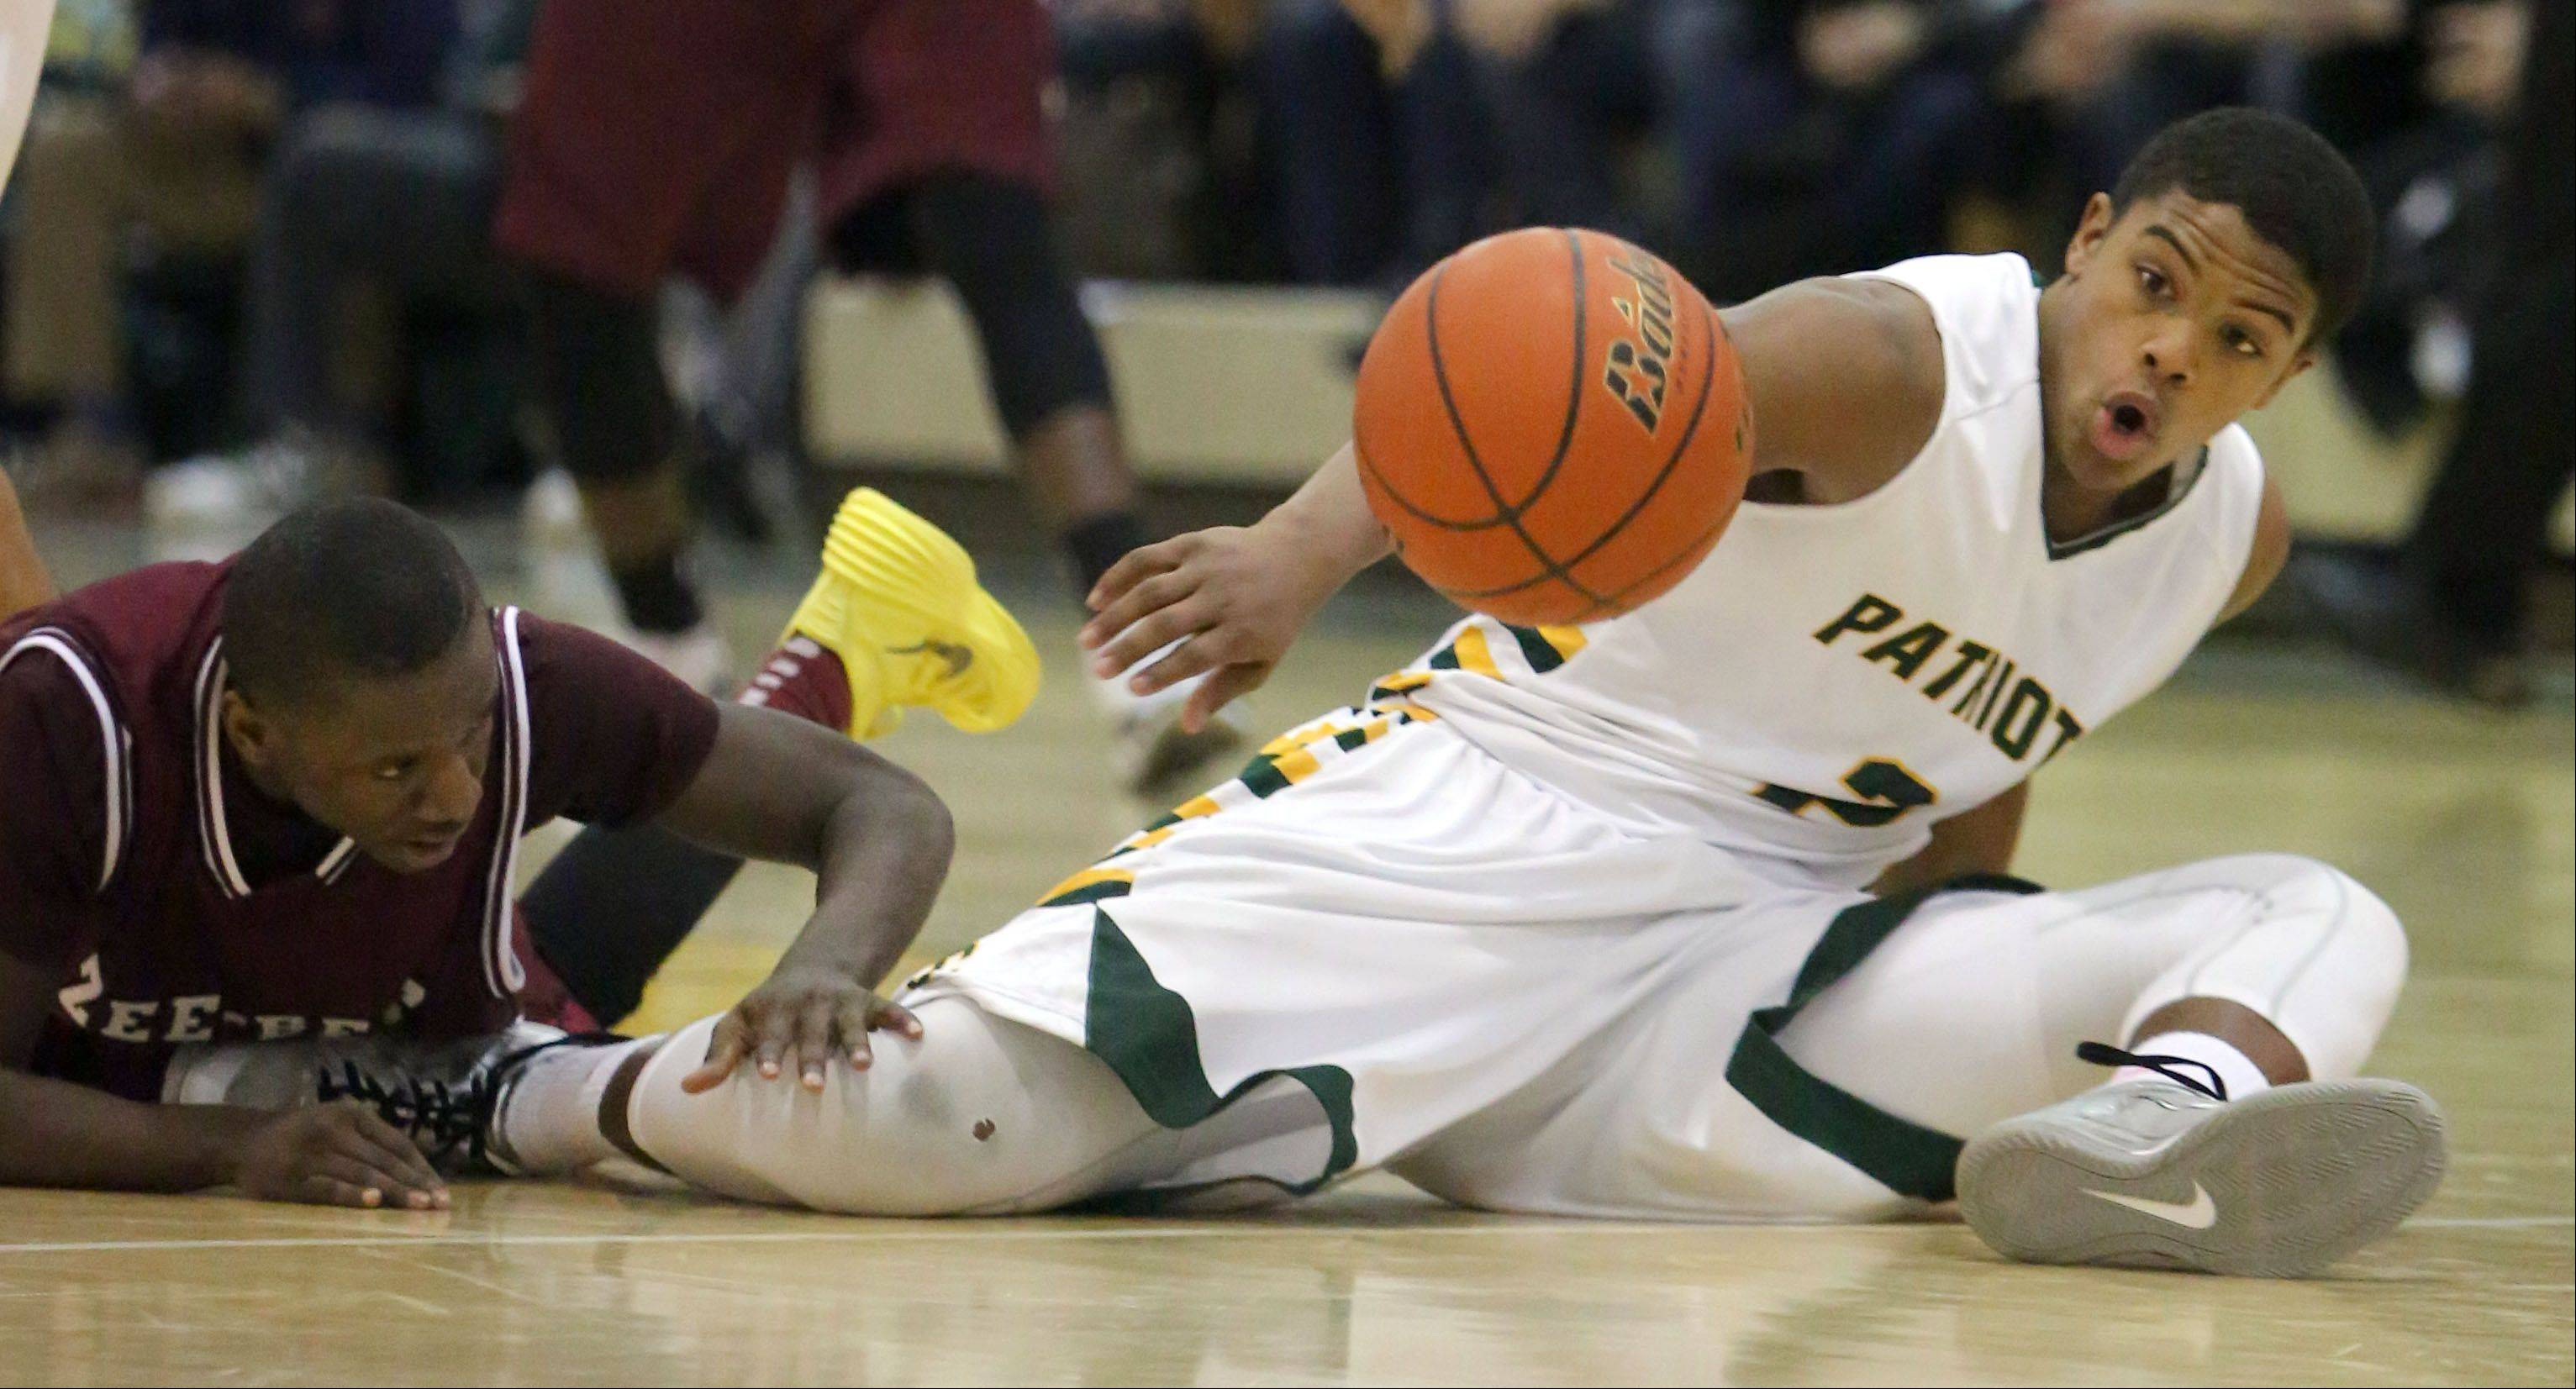 Stevenson's Cameron Green, right, and Zion-Benton's Maurice Young hit the floor in pursuit of a loose ball during NSC Lake play Friday night at Stevenson.